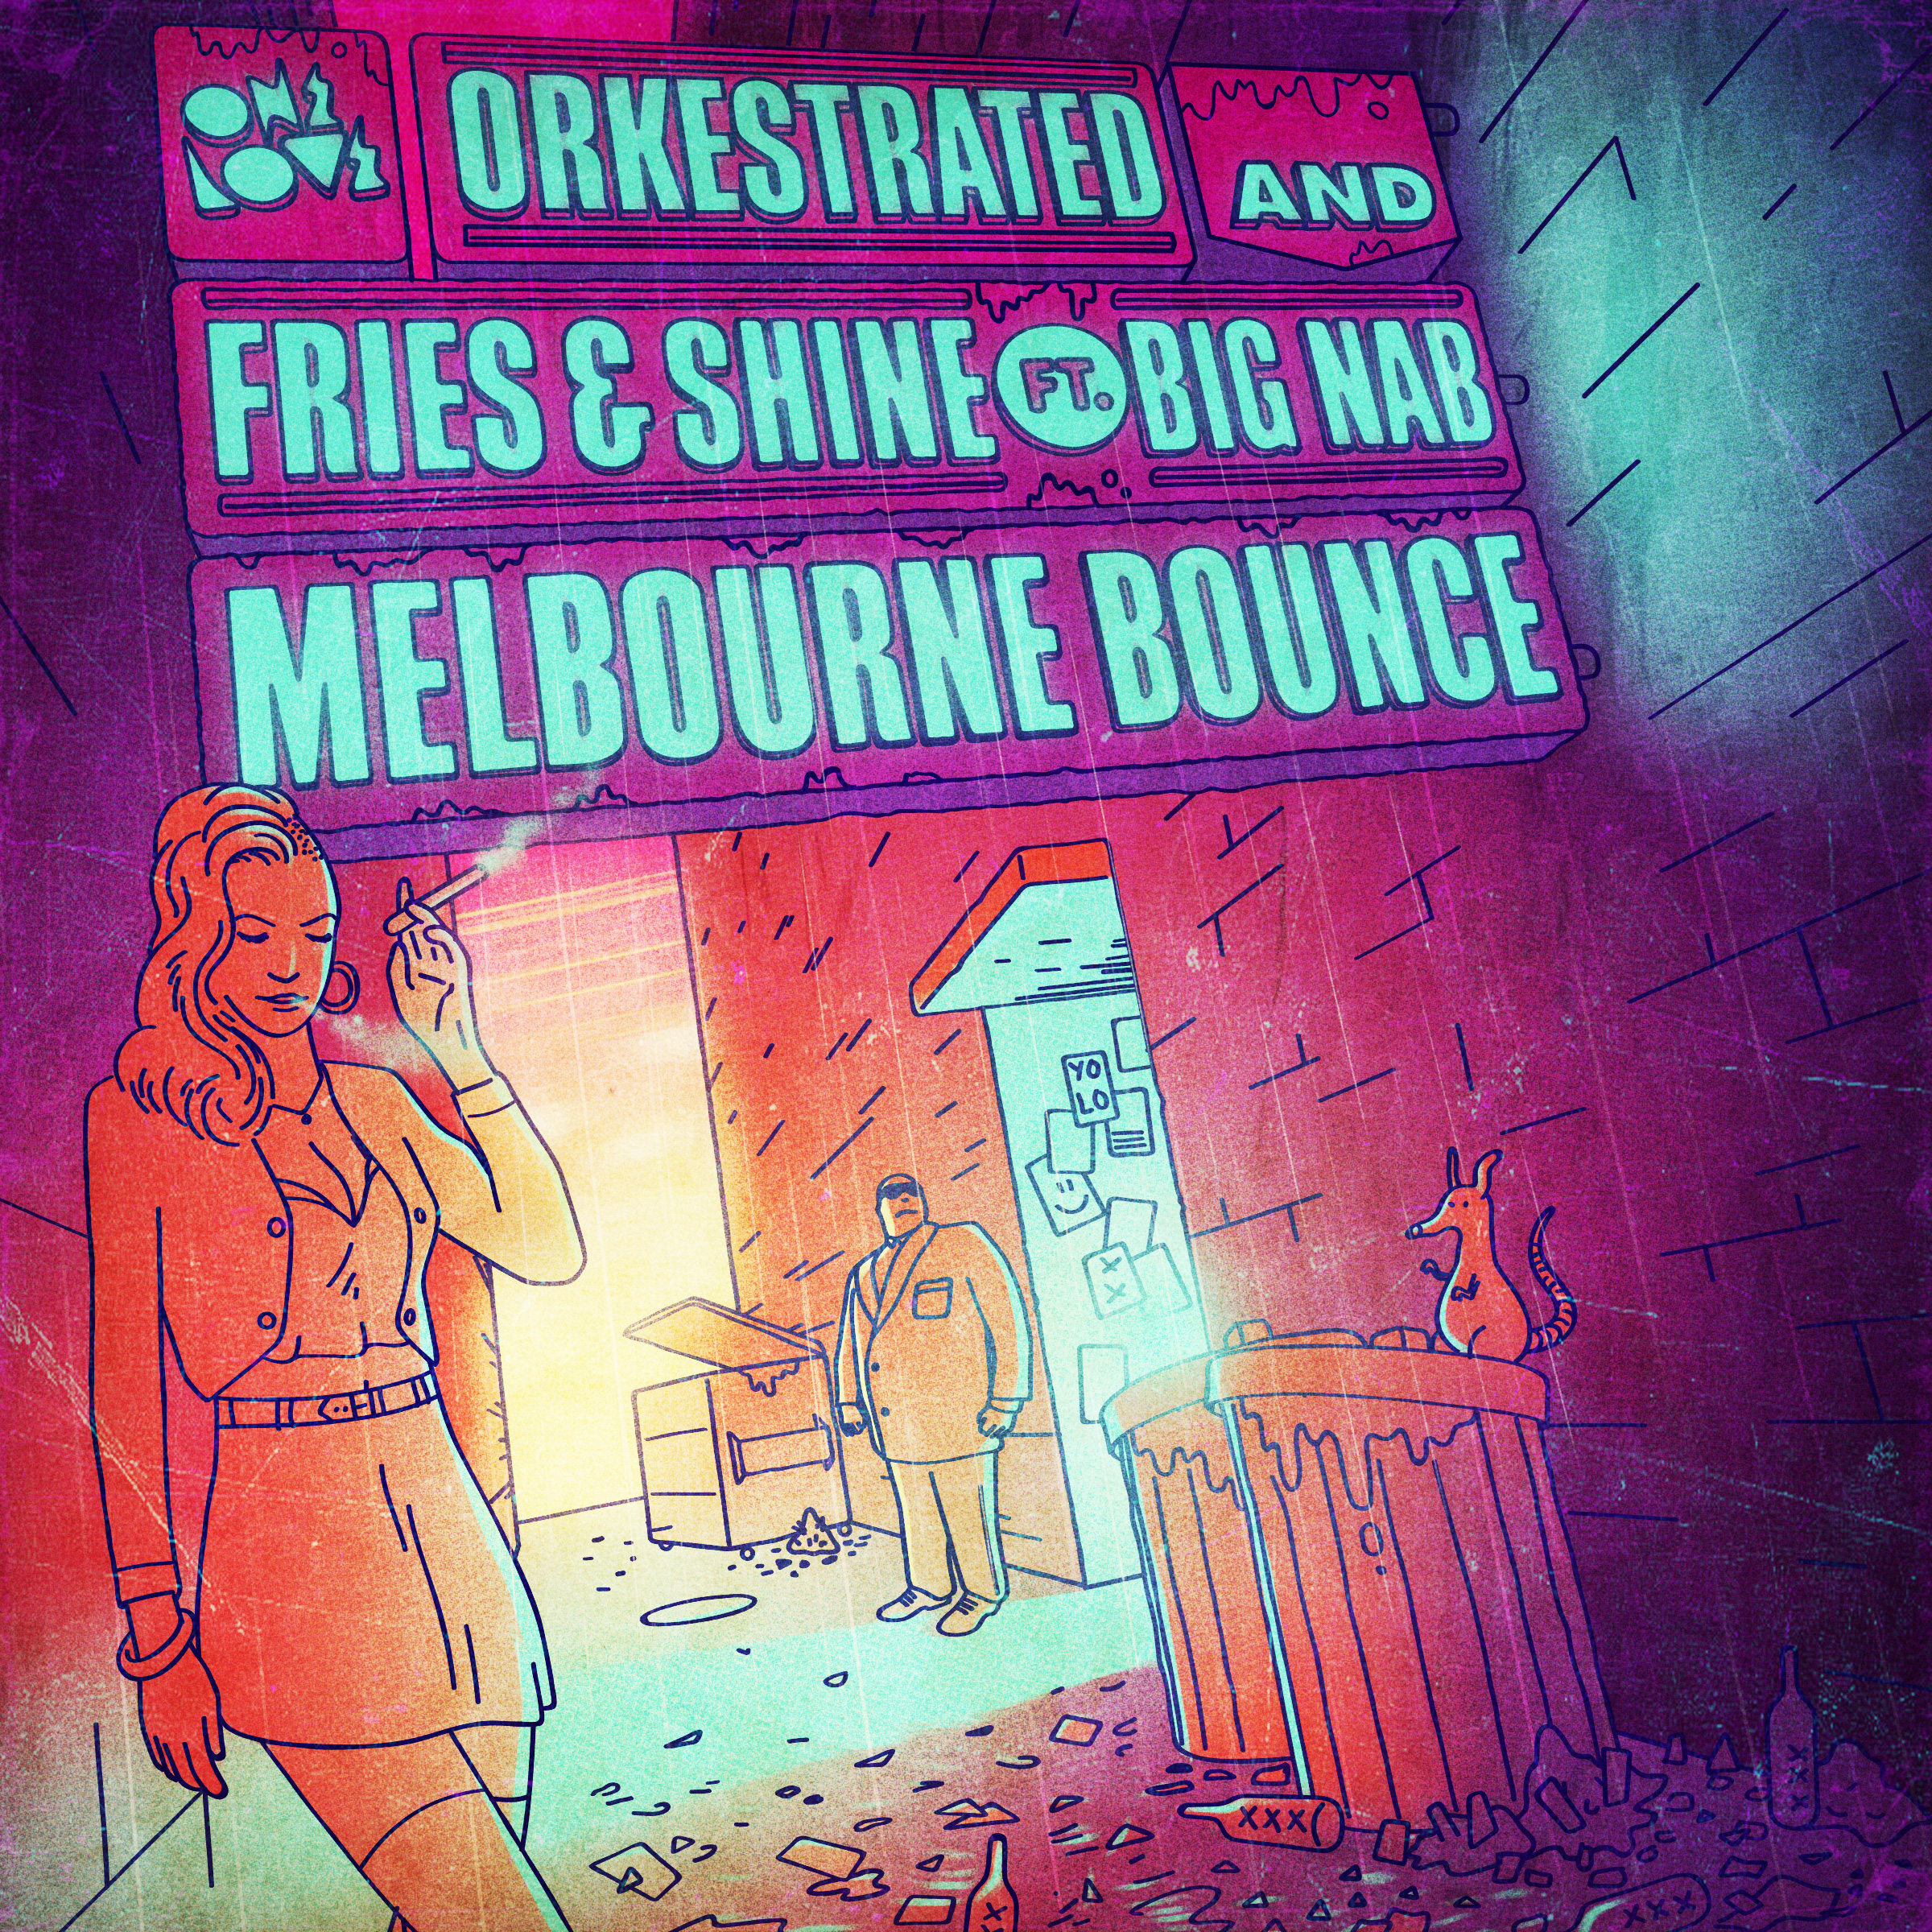 melbourne-bounce-packshot-v1.2